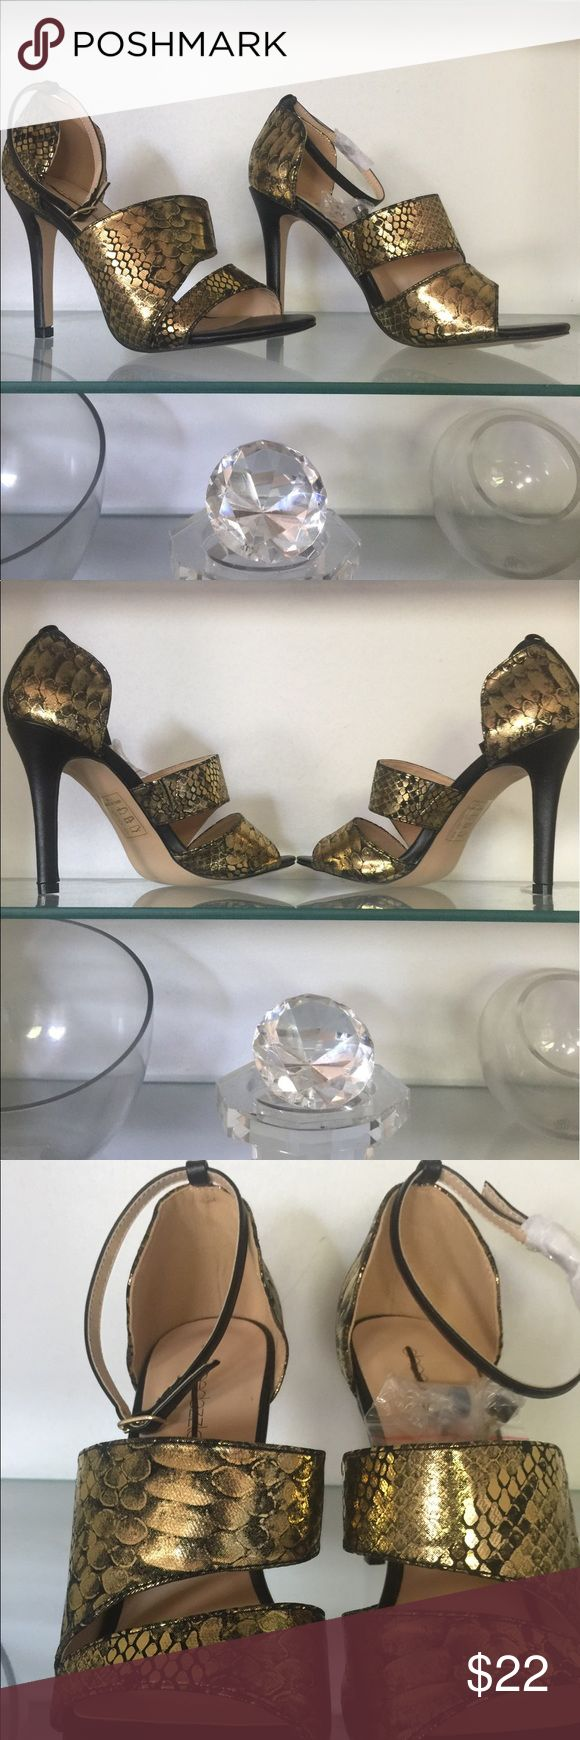 """NWOT Beautiful Ankle Strap Heels These beautiful black and gold shoes have the look of snakeskin but are soft to the touch two straps and an ankle strap closure accented with a black strip up the back for a clean accented look the thicker strap has a hidden piece of elastic to give the strap a little extra stretch. The heel is 4"""" high Shoes Heels"""